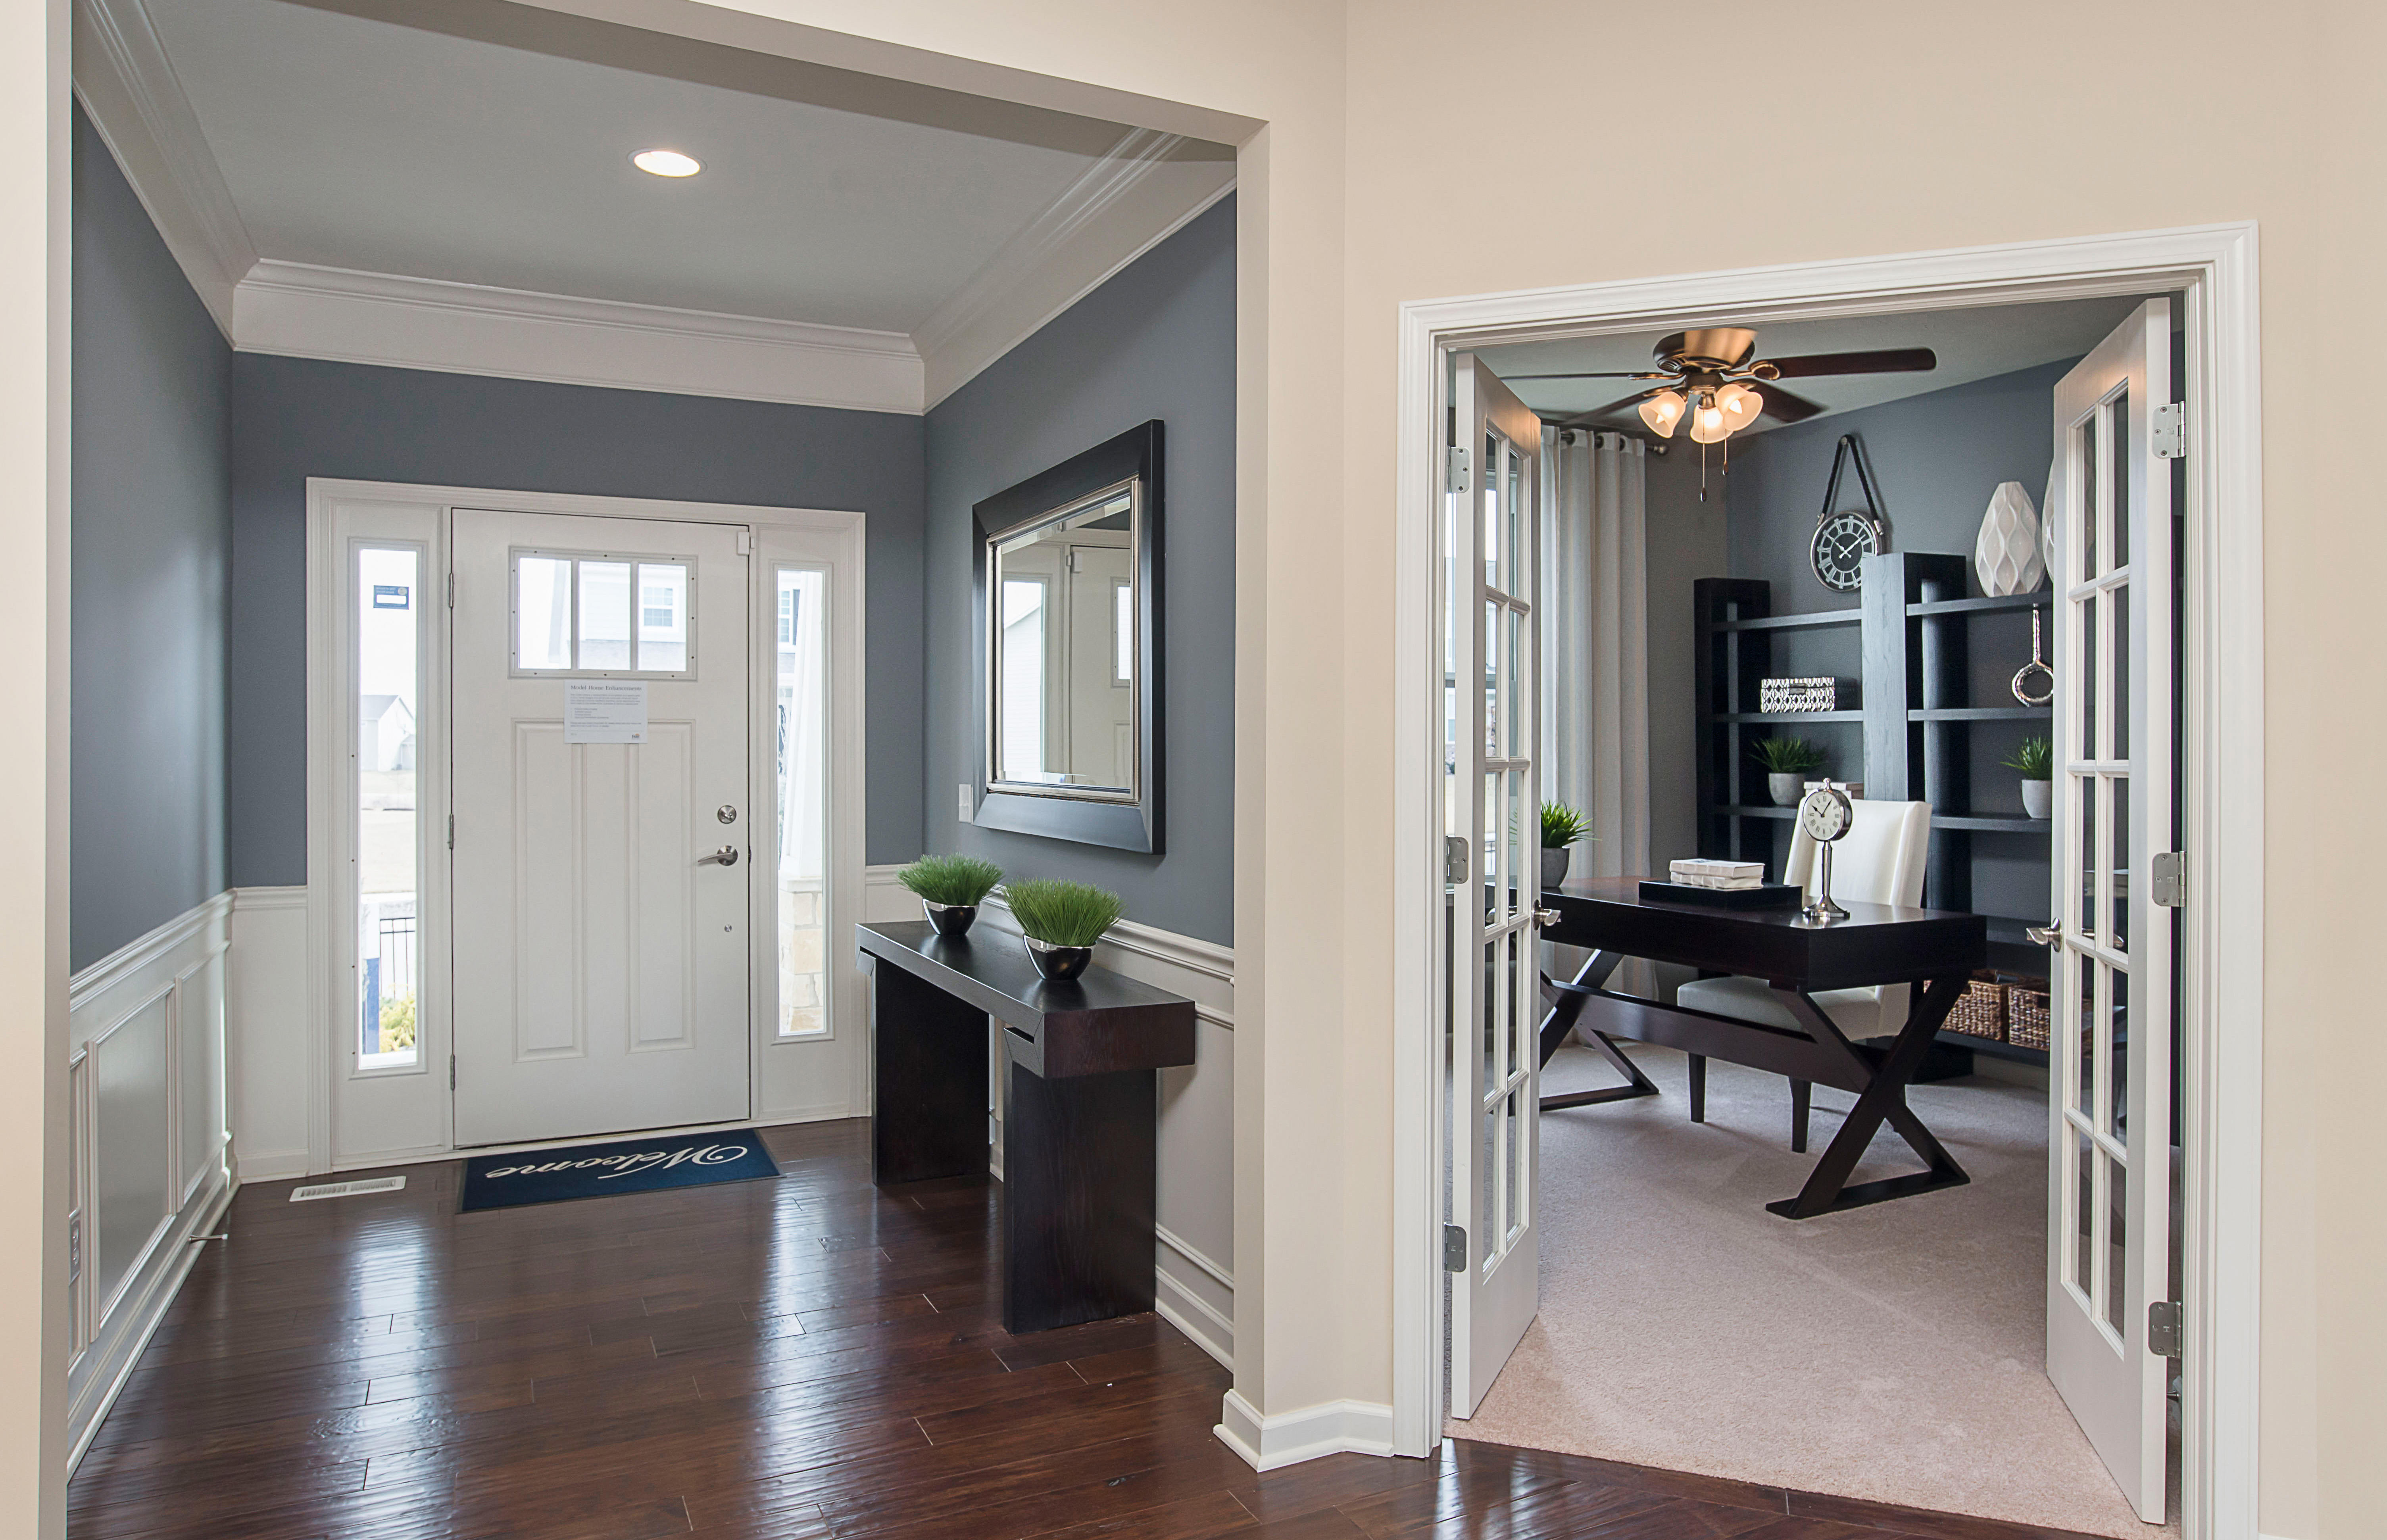 Bent Creek by Pulte Homes image 5